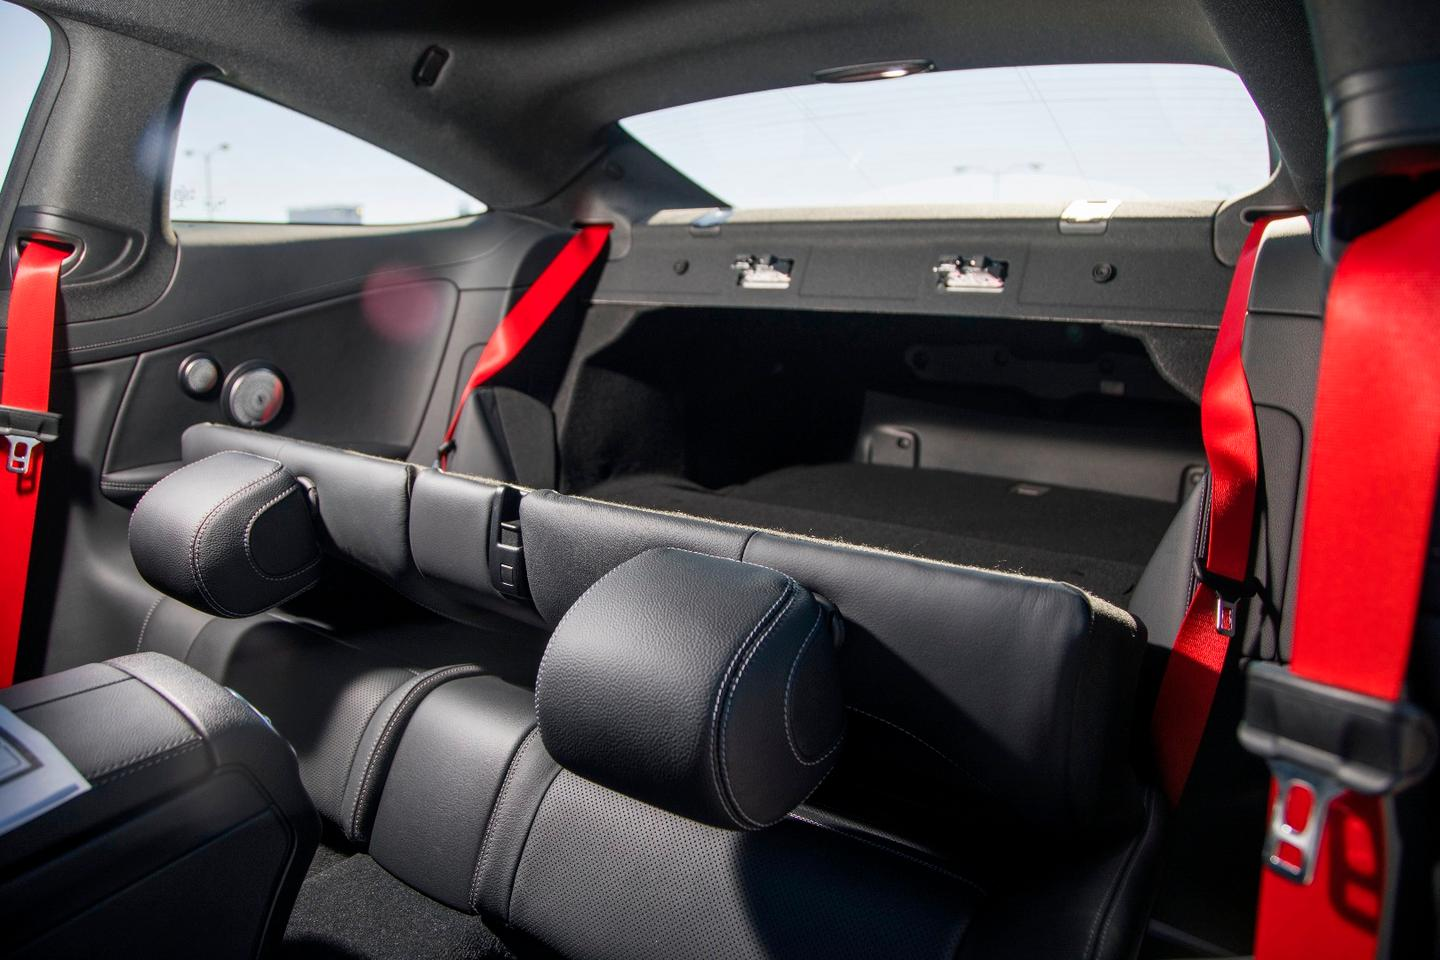 The cramped rear seating, while beautiful to look at, is largely for children or pets, but folds down to add some extended cargo space for the 2018 C43